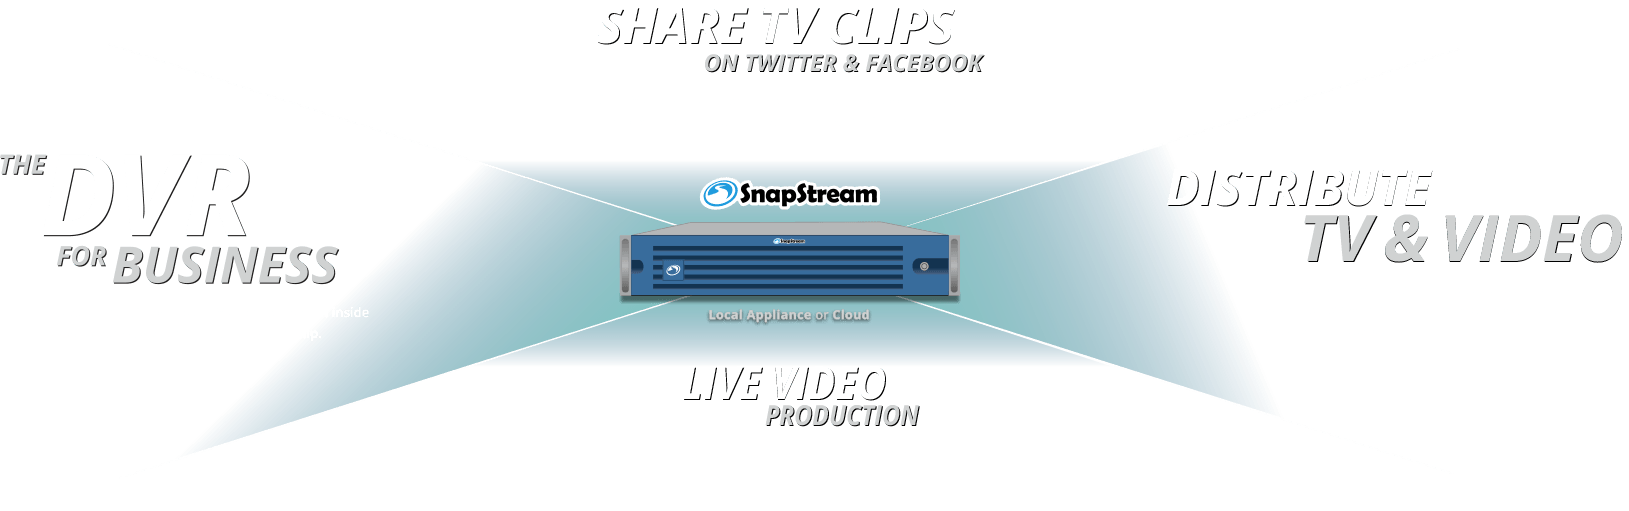 SnapStream: The DVR for Business